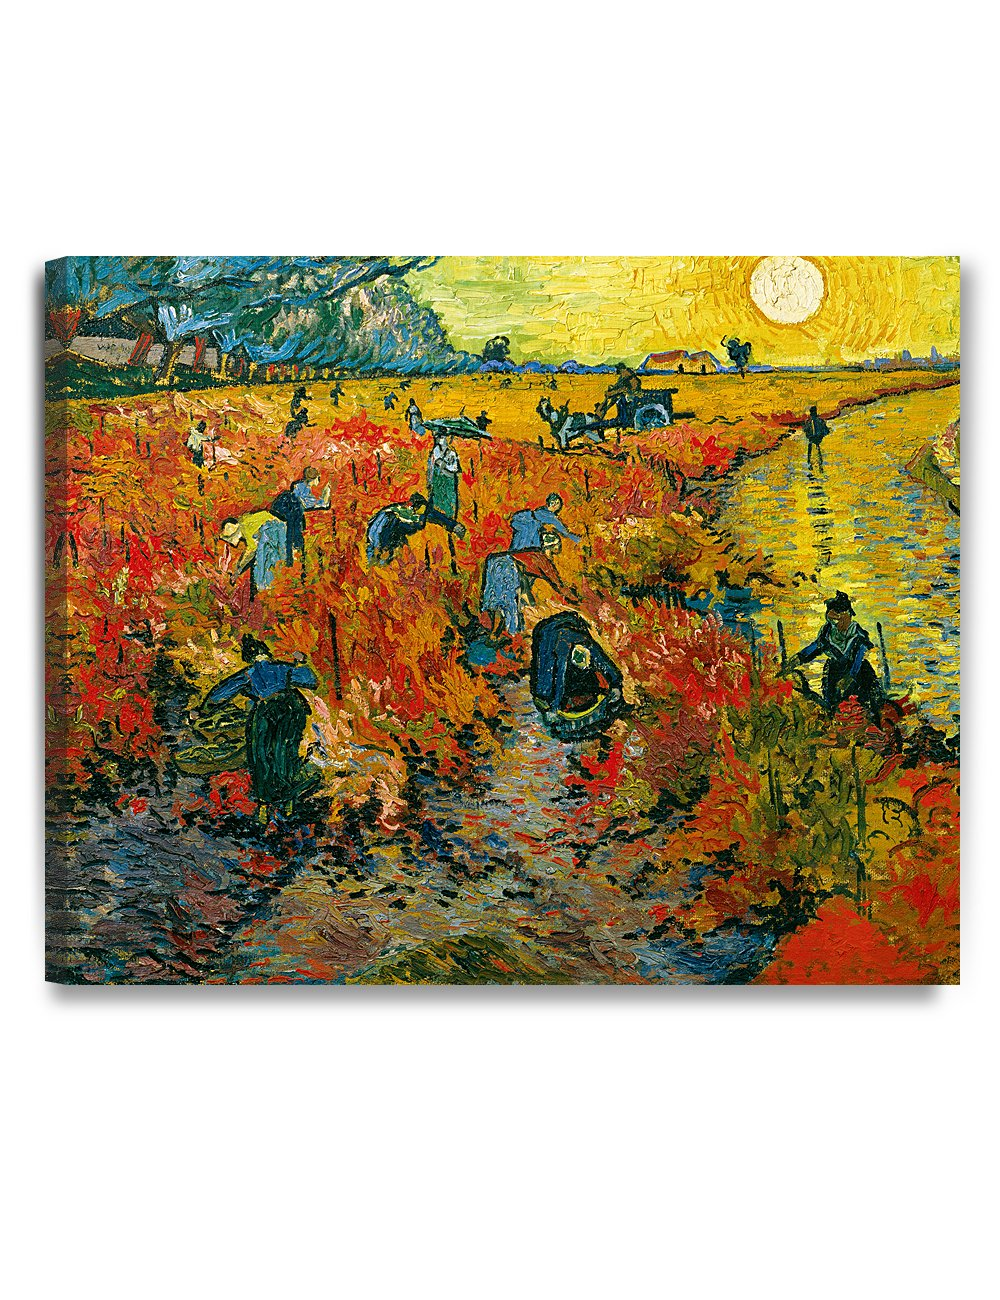 DECORARTS - The Red Vineyards, Vincent Van Gogh Art Reproduction. Giclee Canvas Prints Wall Art for Home Decor 30x24